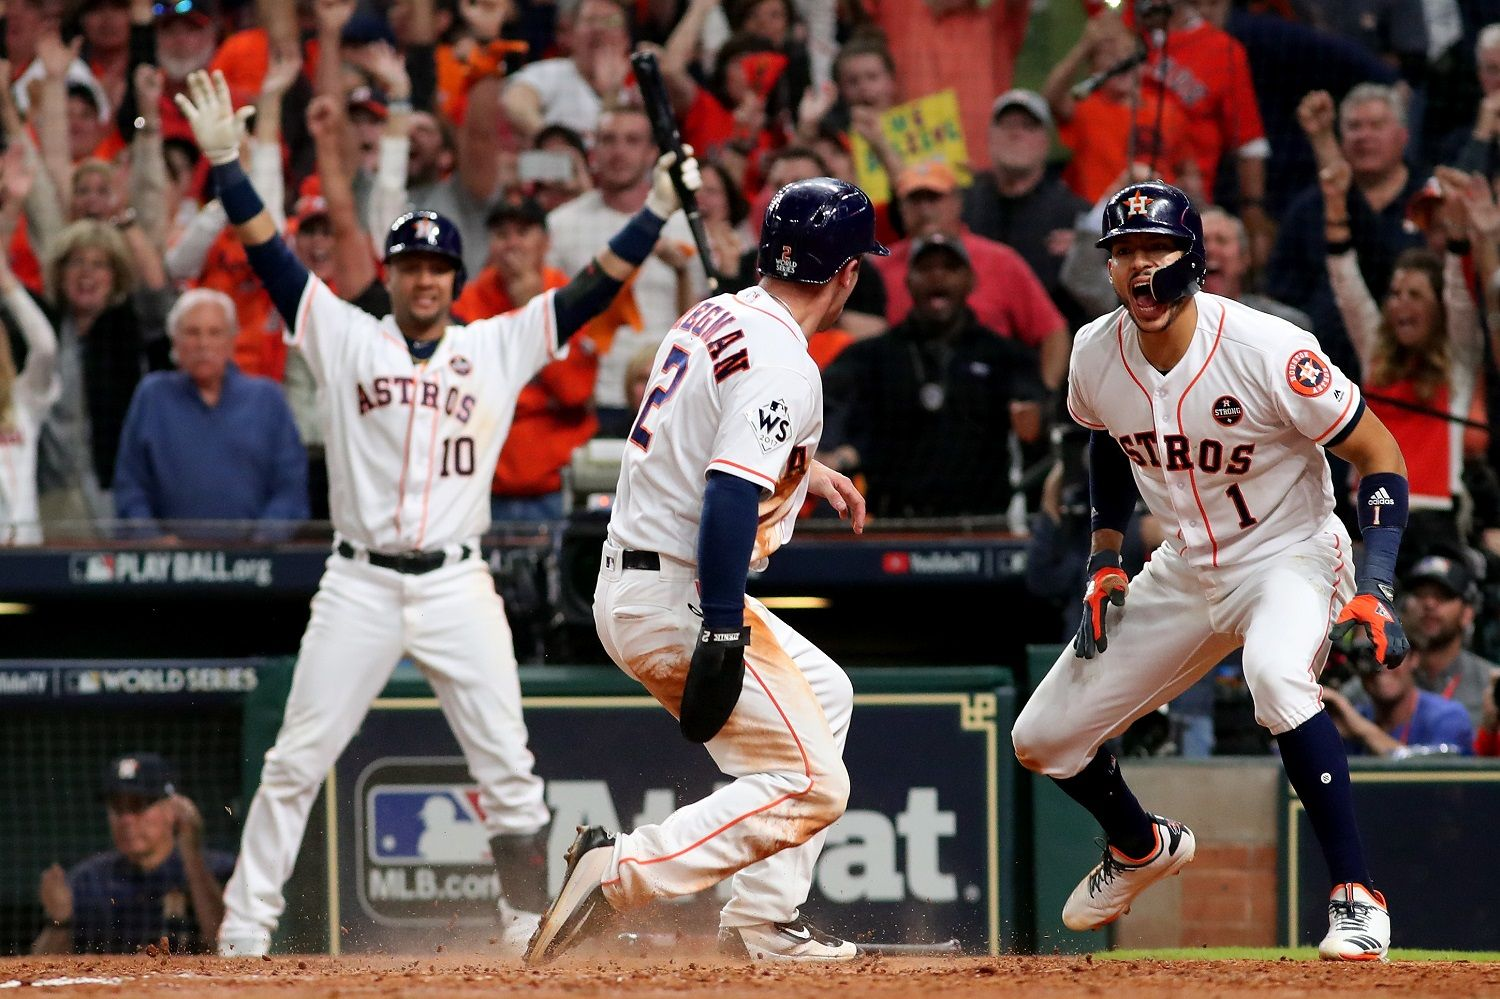 HOUSTON, TX - OCTOBER 29: Alex Bregman #2 of the Houston Astros celebrates after scoring on a double by Jose Altuve #27 (not pictured) during the seventh inning against the Los Angeles Dodgers in game five of the 2017 World Series at Minute Maid Park on October 29, 2017 in Houston, Texas.  (Photo by Jamie Squire/Getty Images)